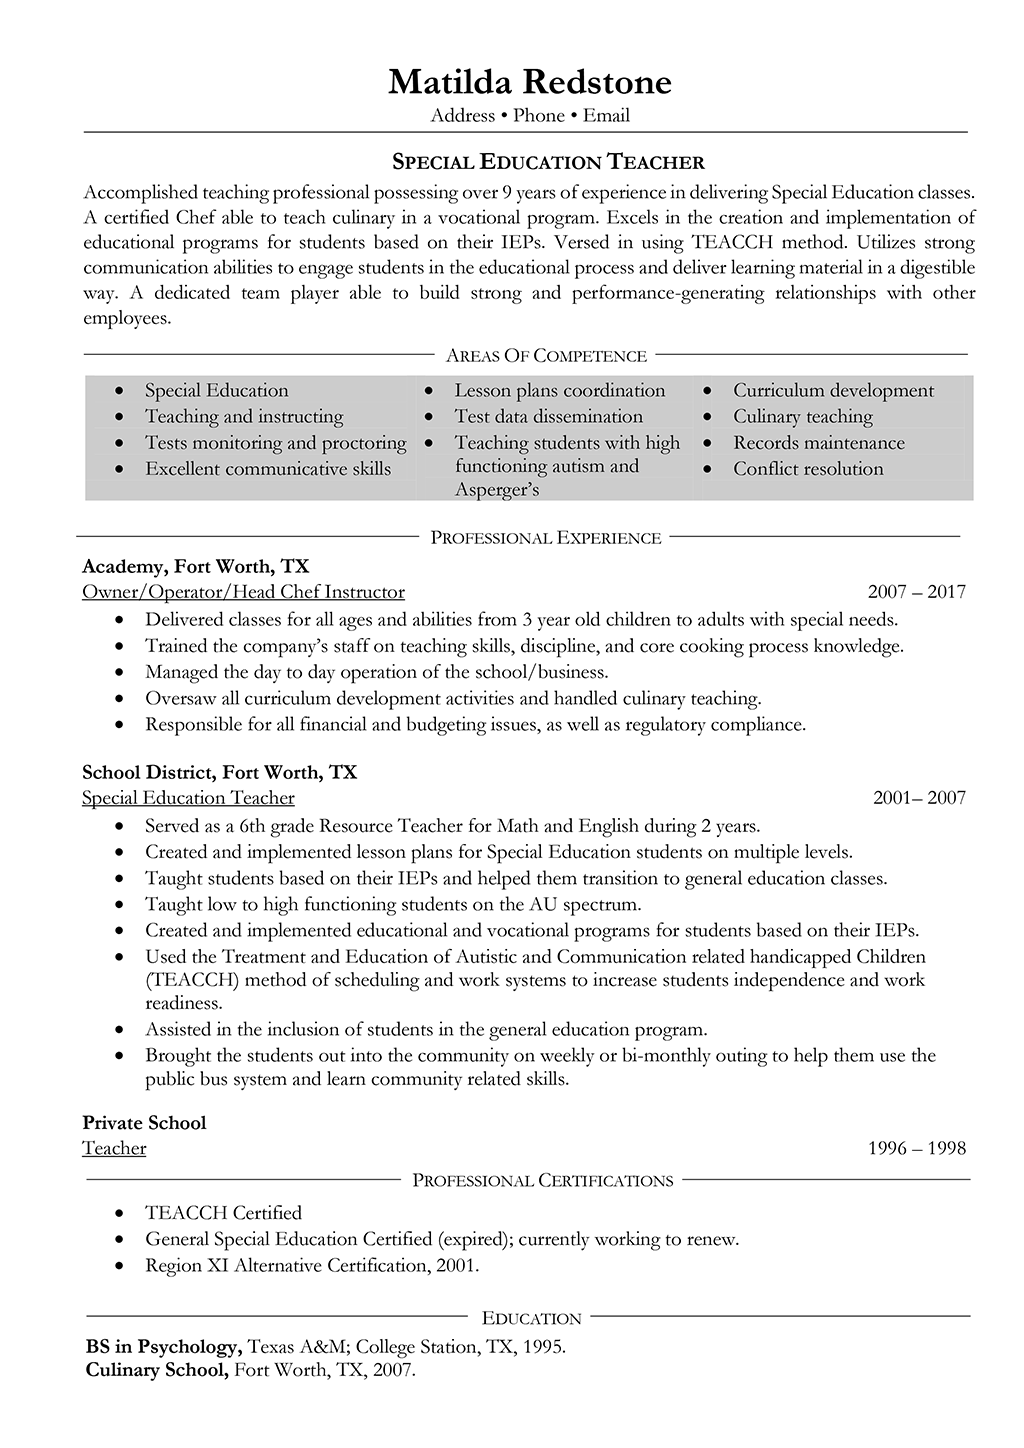 teaching skills for resume teaching skills for cv 2019 teaching qualifications for resume 2020 teaching assistant skills for resume teaching skills for teachers resume